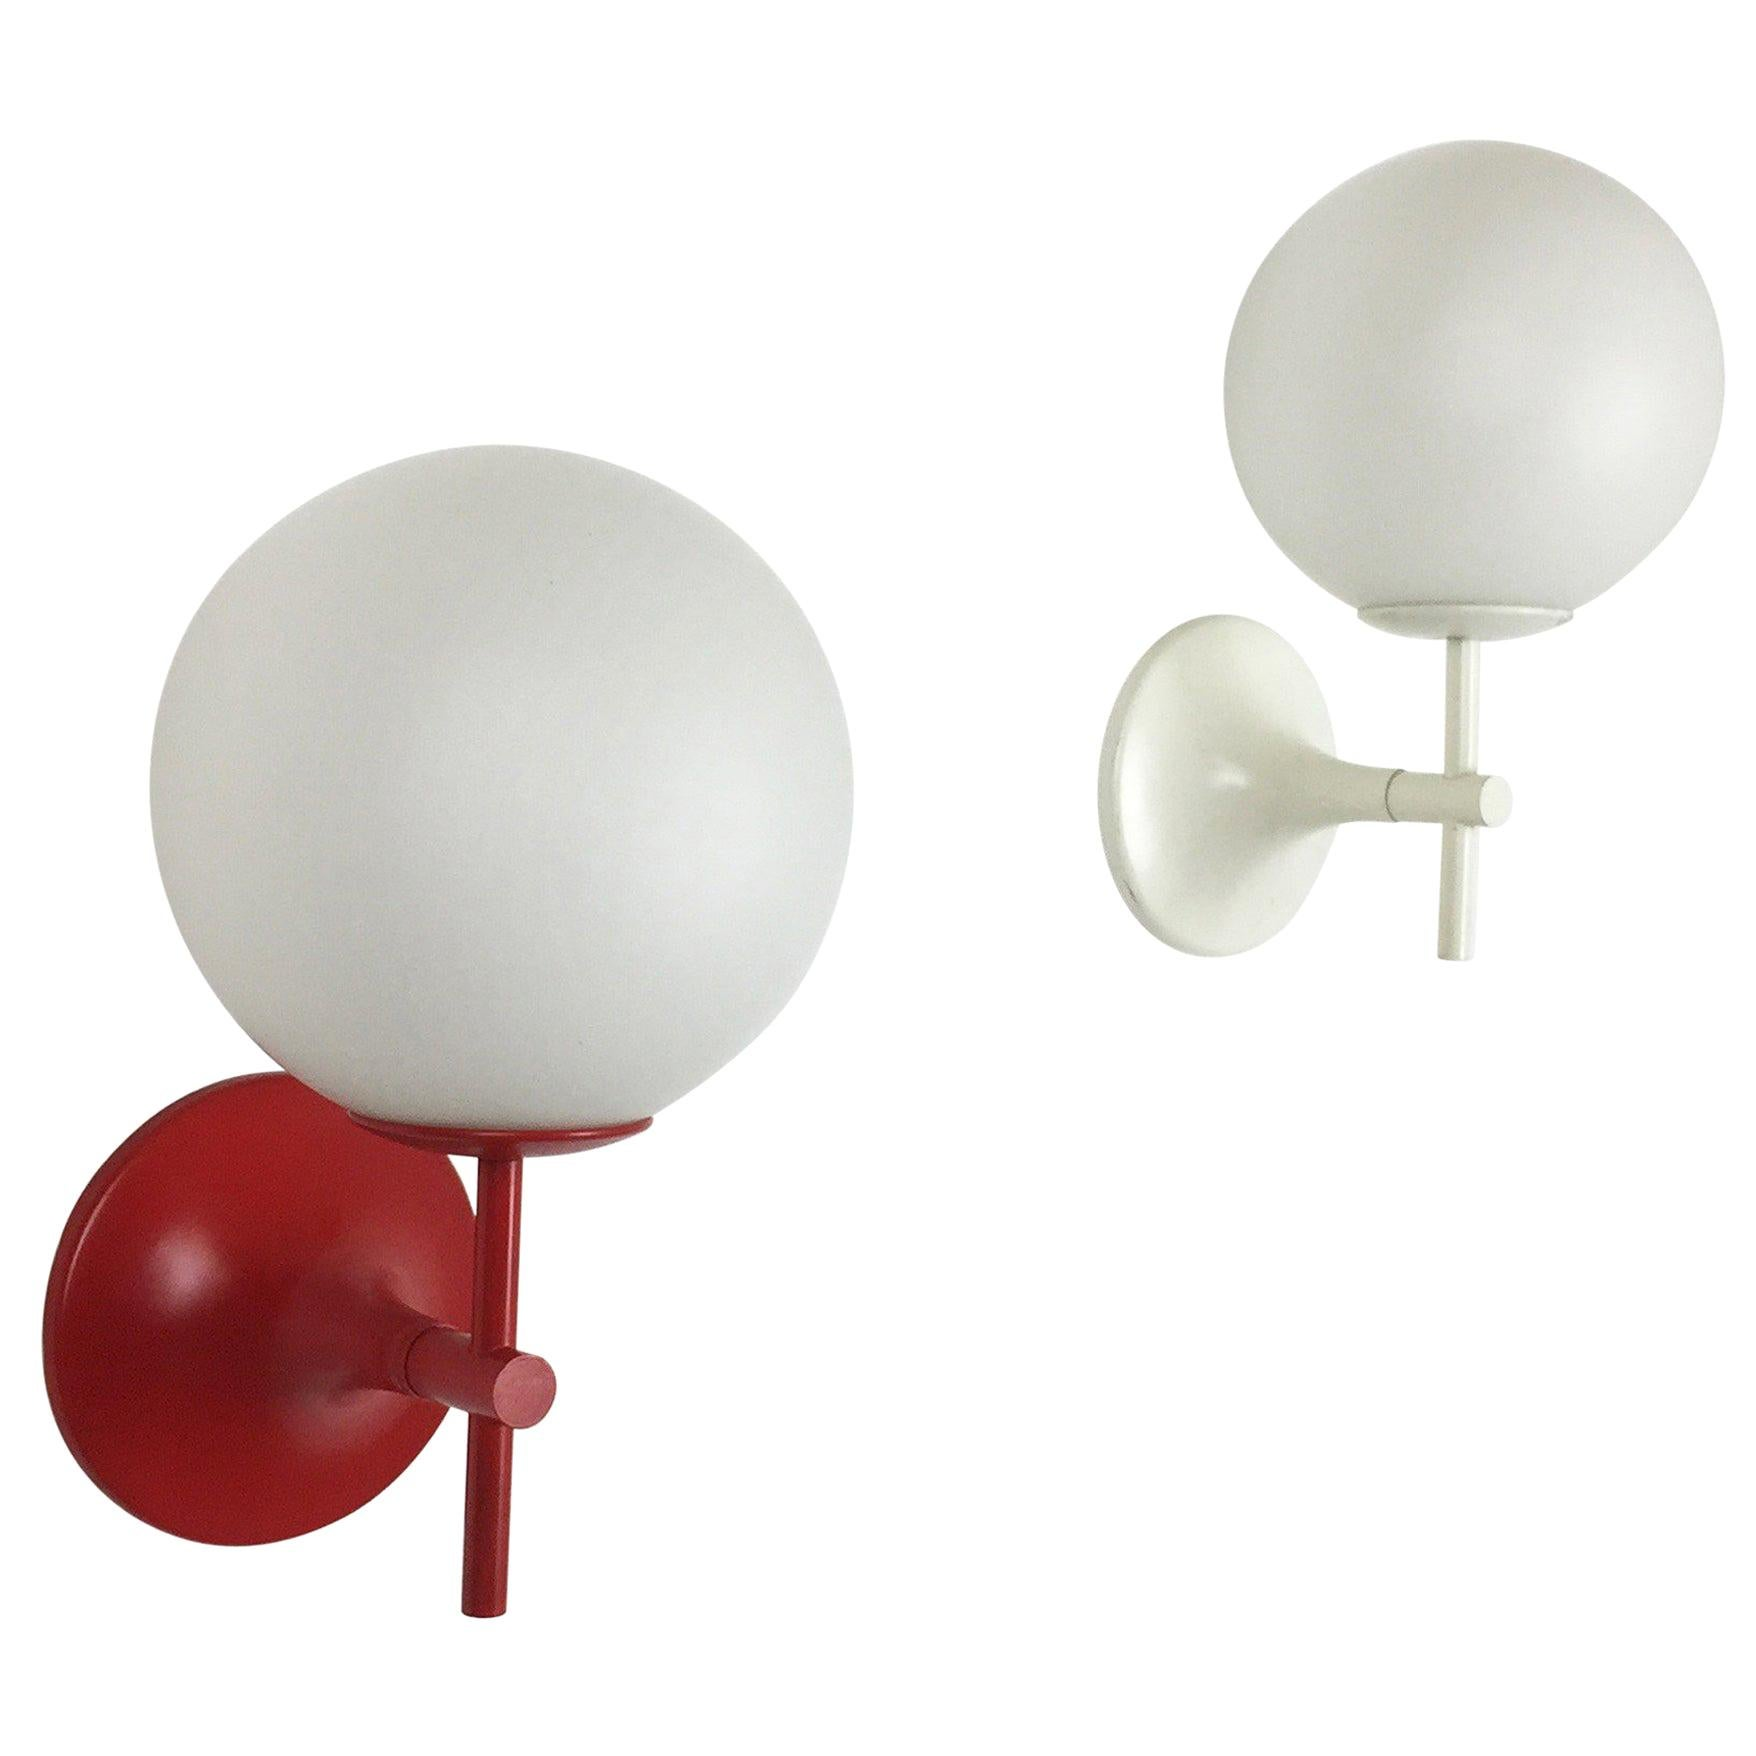 Set of Two Original 1970s Wall Lights by Max Bill for Temde, Switzerland